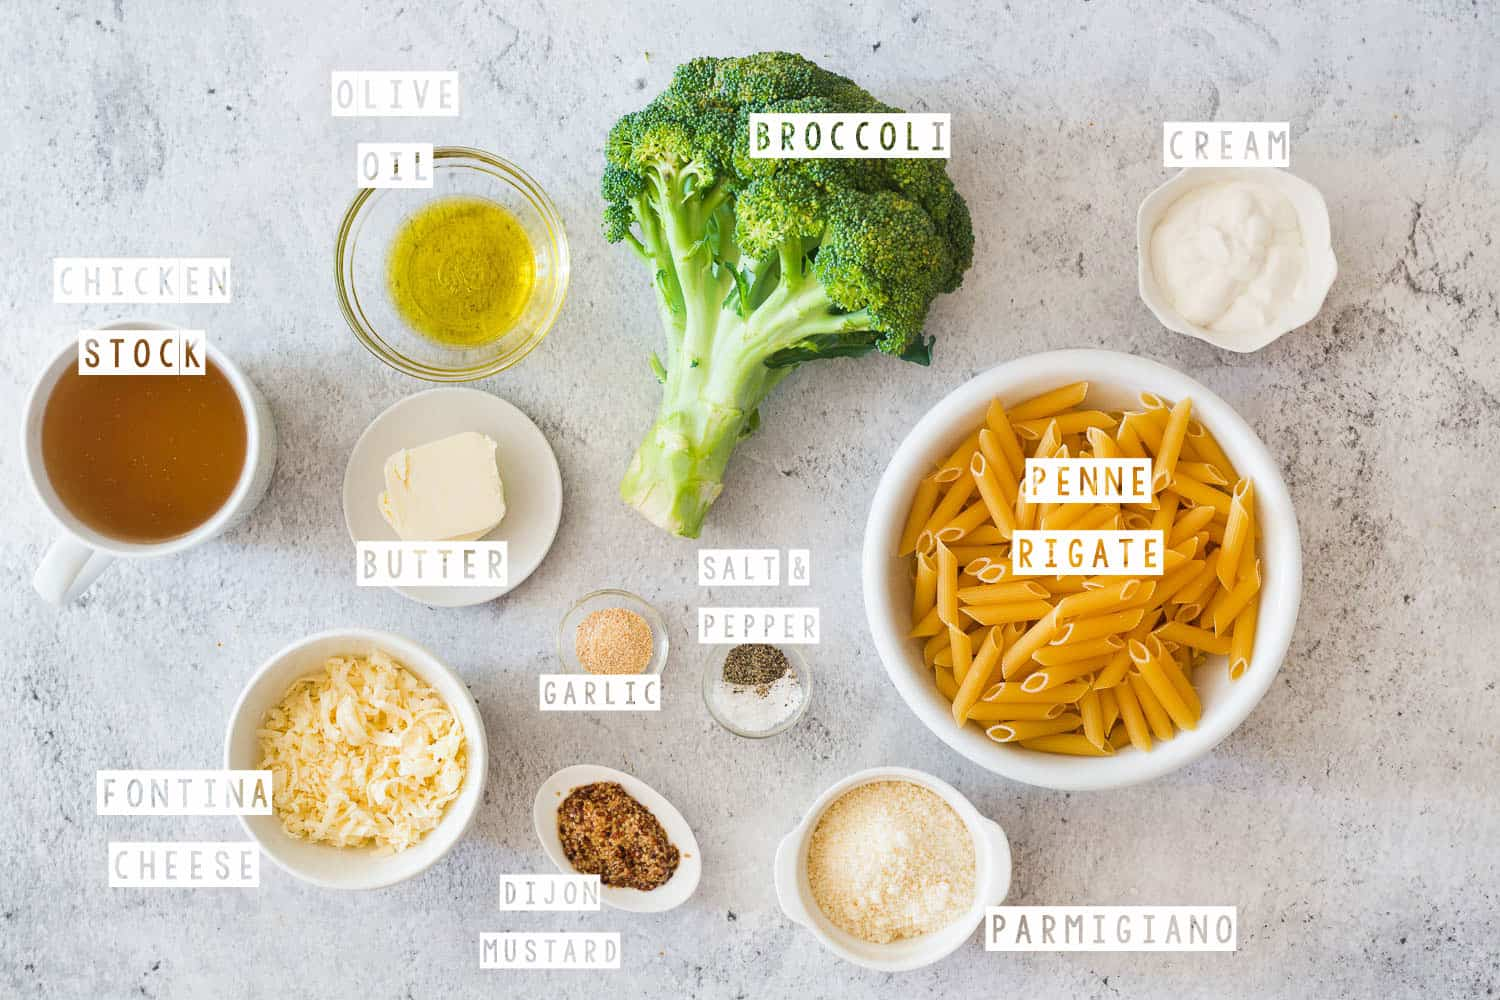 Ingredients for pasta displayed on a concrete surface.